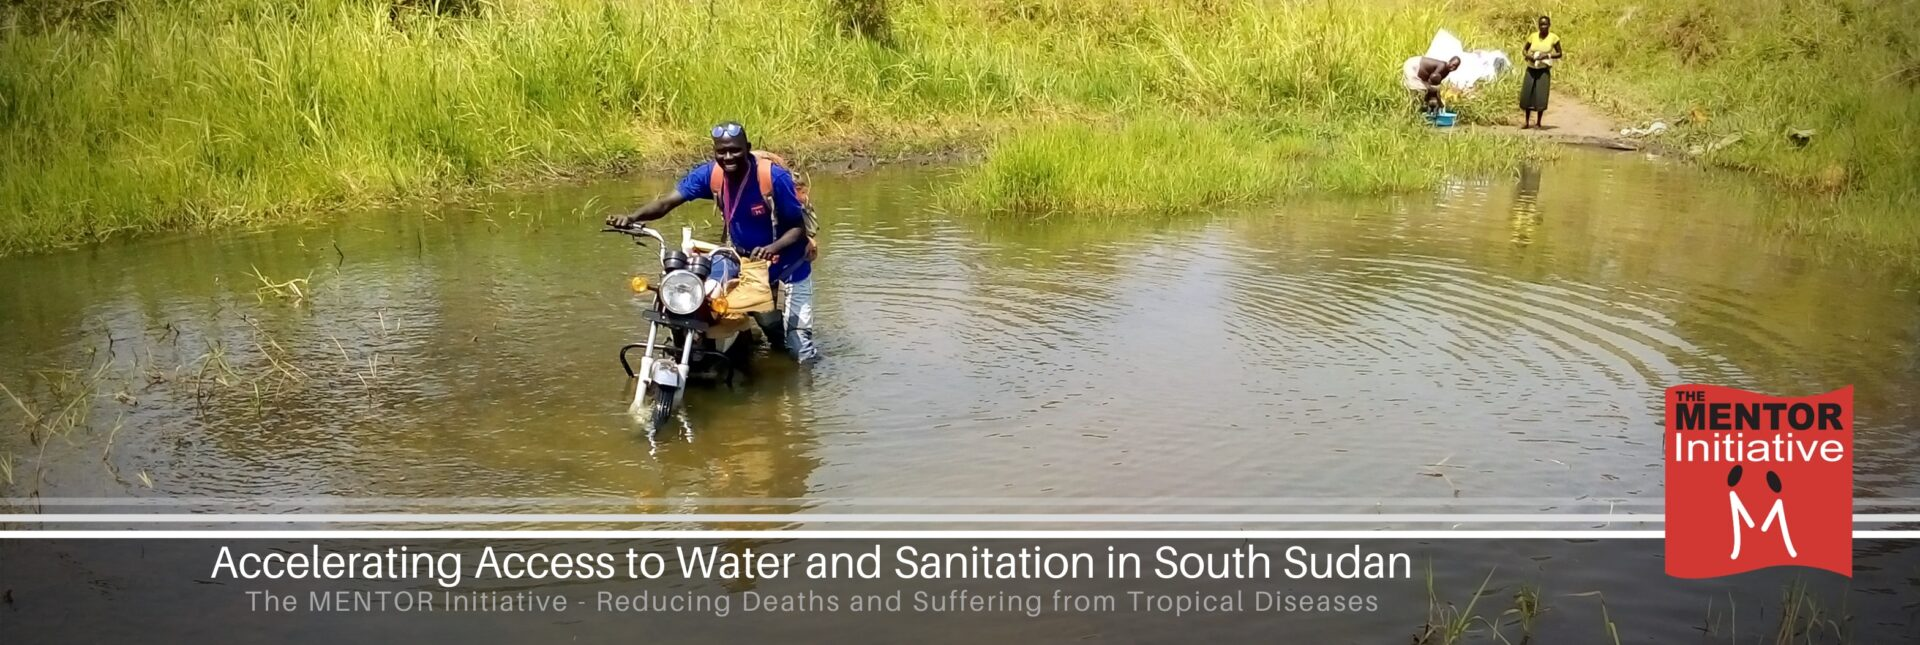 Accelerating Access to Water and Sanitation in South Sudan